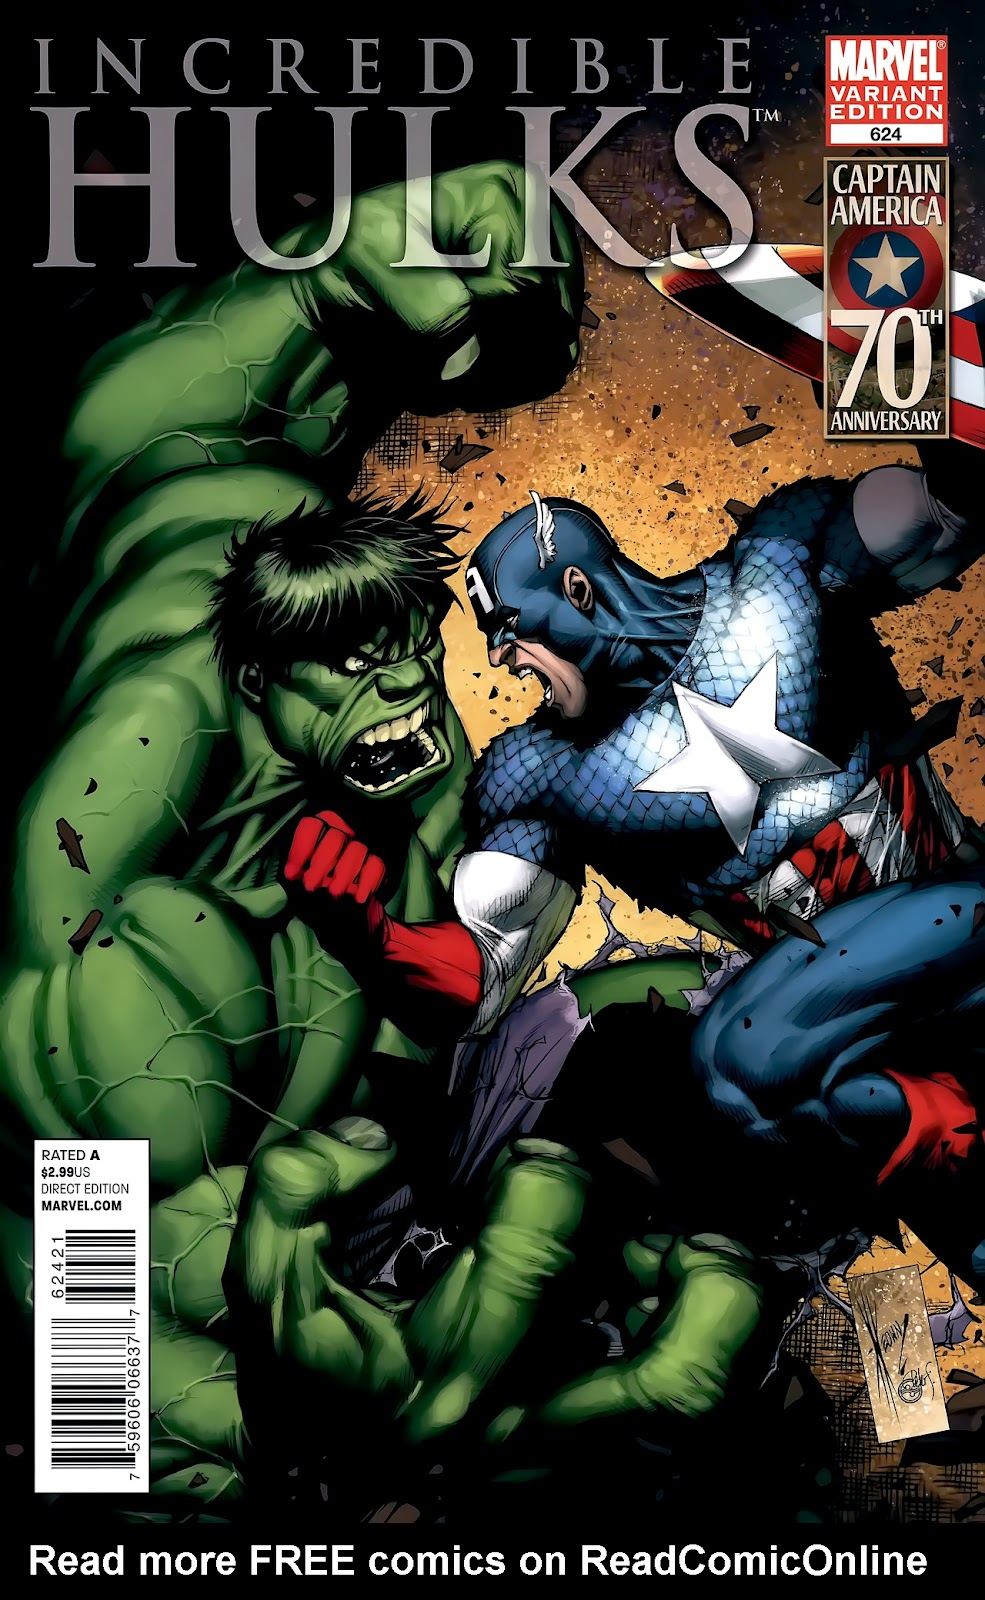 Incredible Hulks (2010) Issue #624 #14 - English 2